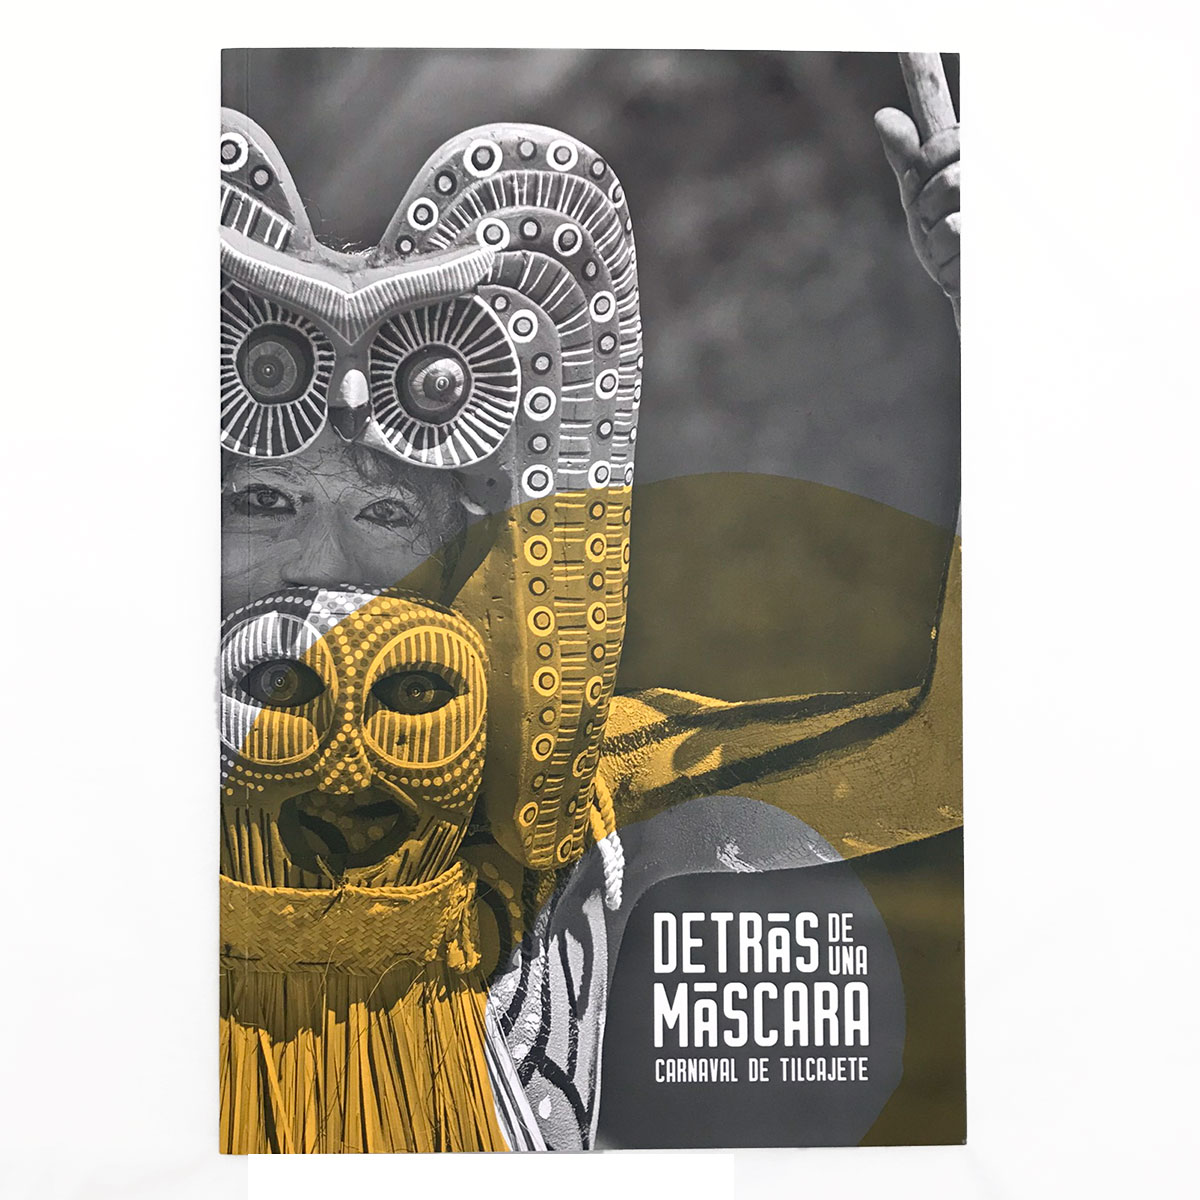 Jacobo and Maria Angeles New Limited Copies Only! Jacobo and Maria Angeles Workshop: Behind the Mask / Detras de una Mascara – Book 2019 Books